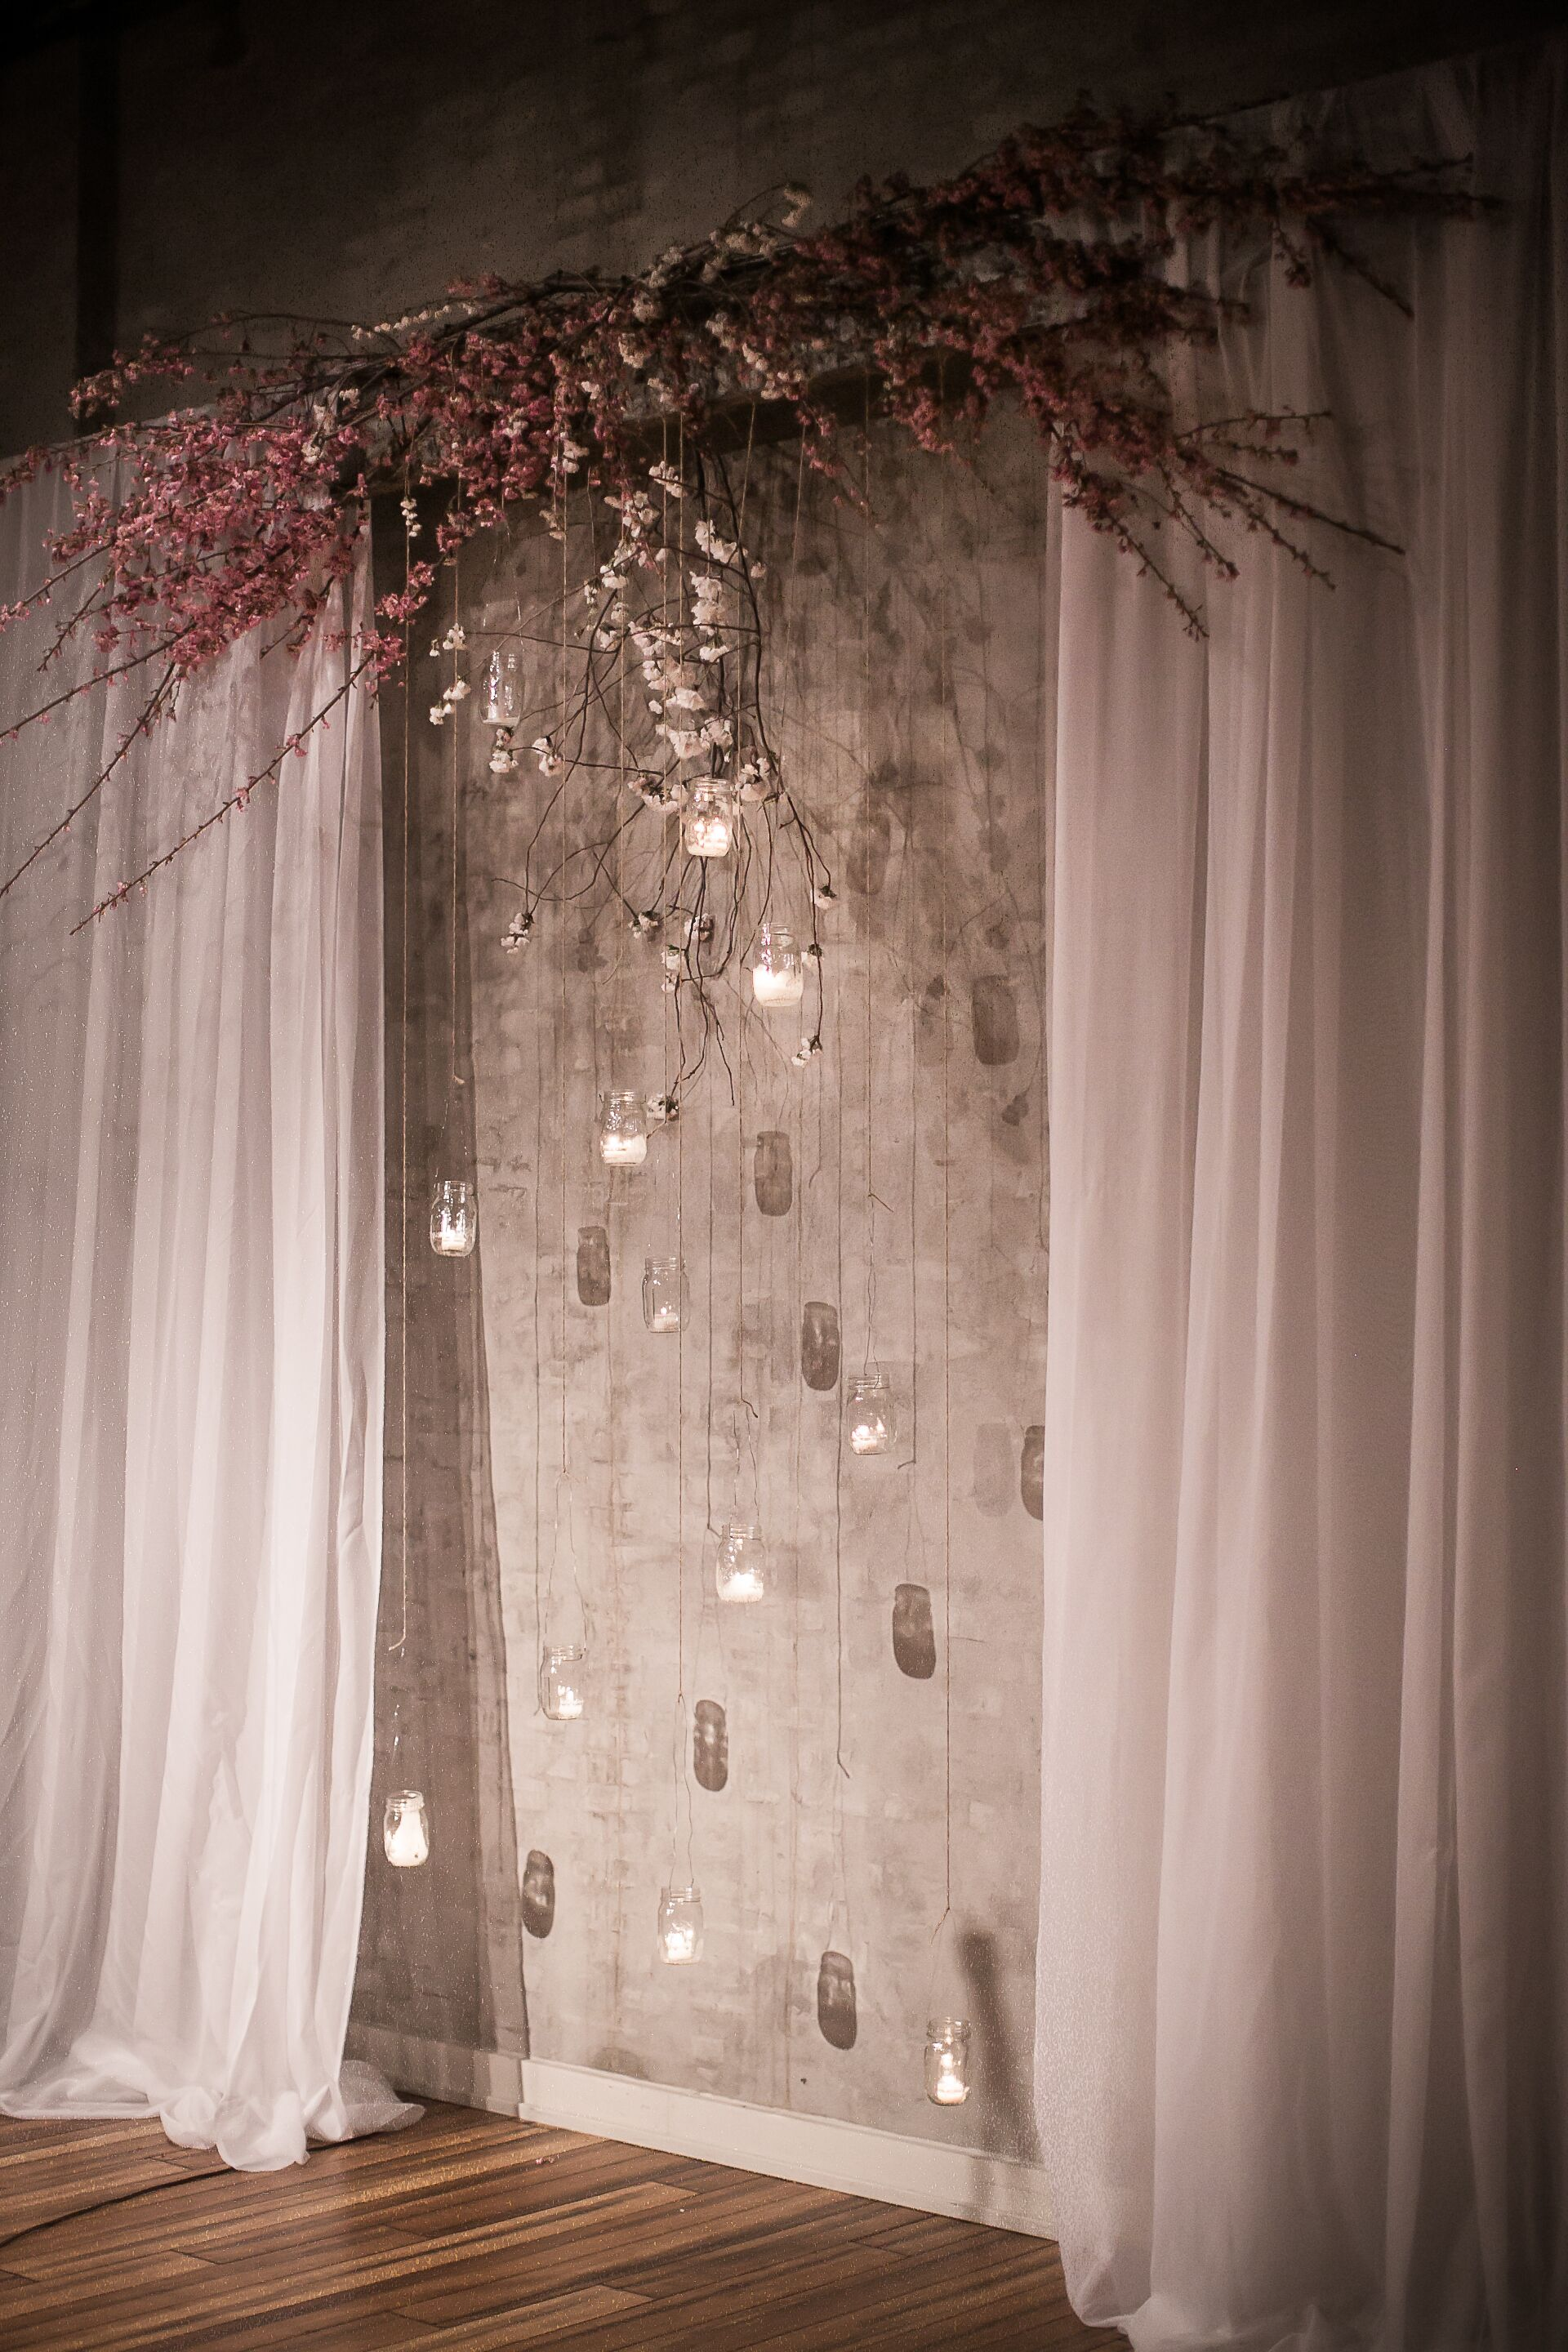 Altar Decor With Hanging Candles In Mason Jars And Cherry